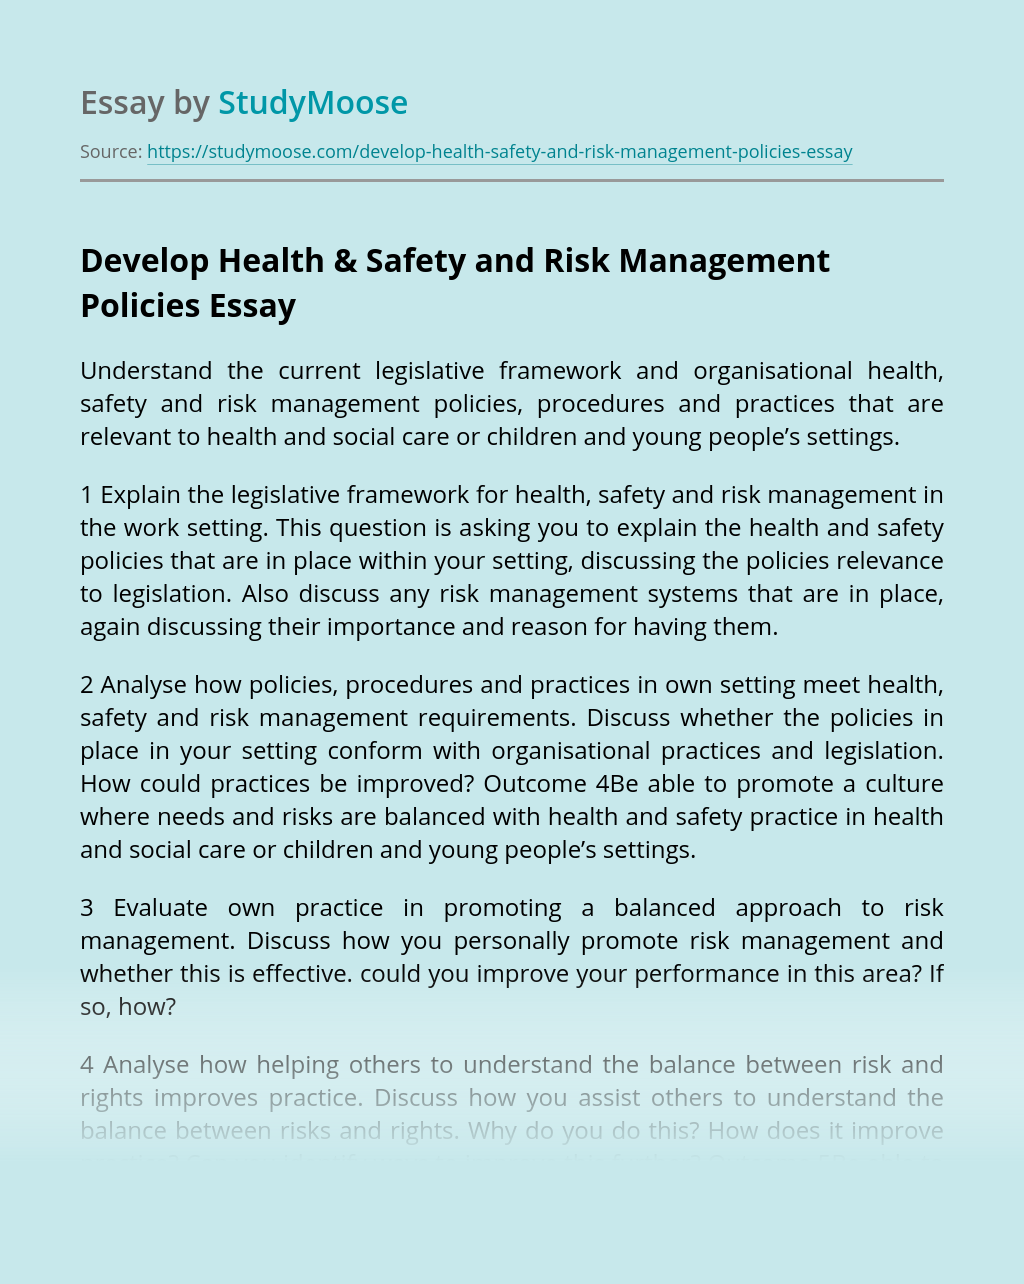 Develop Health & Safety and Risk Management Policies